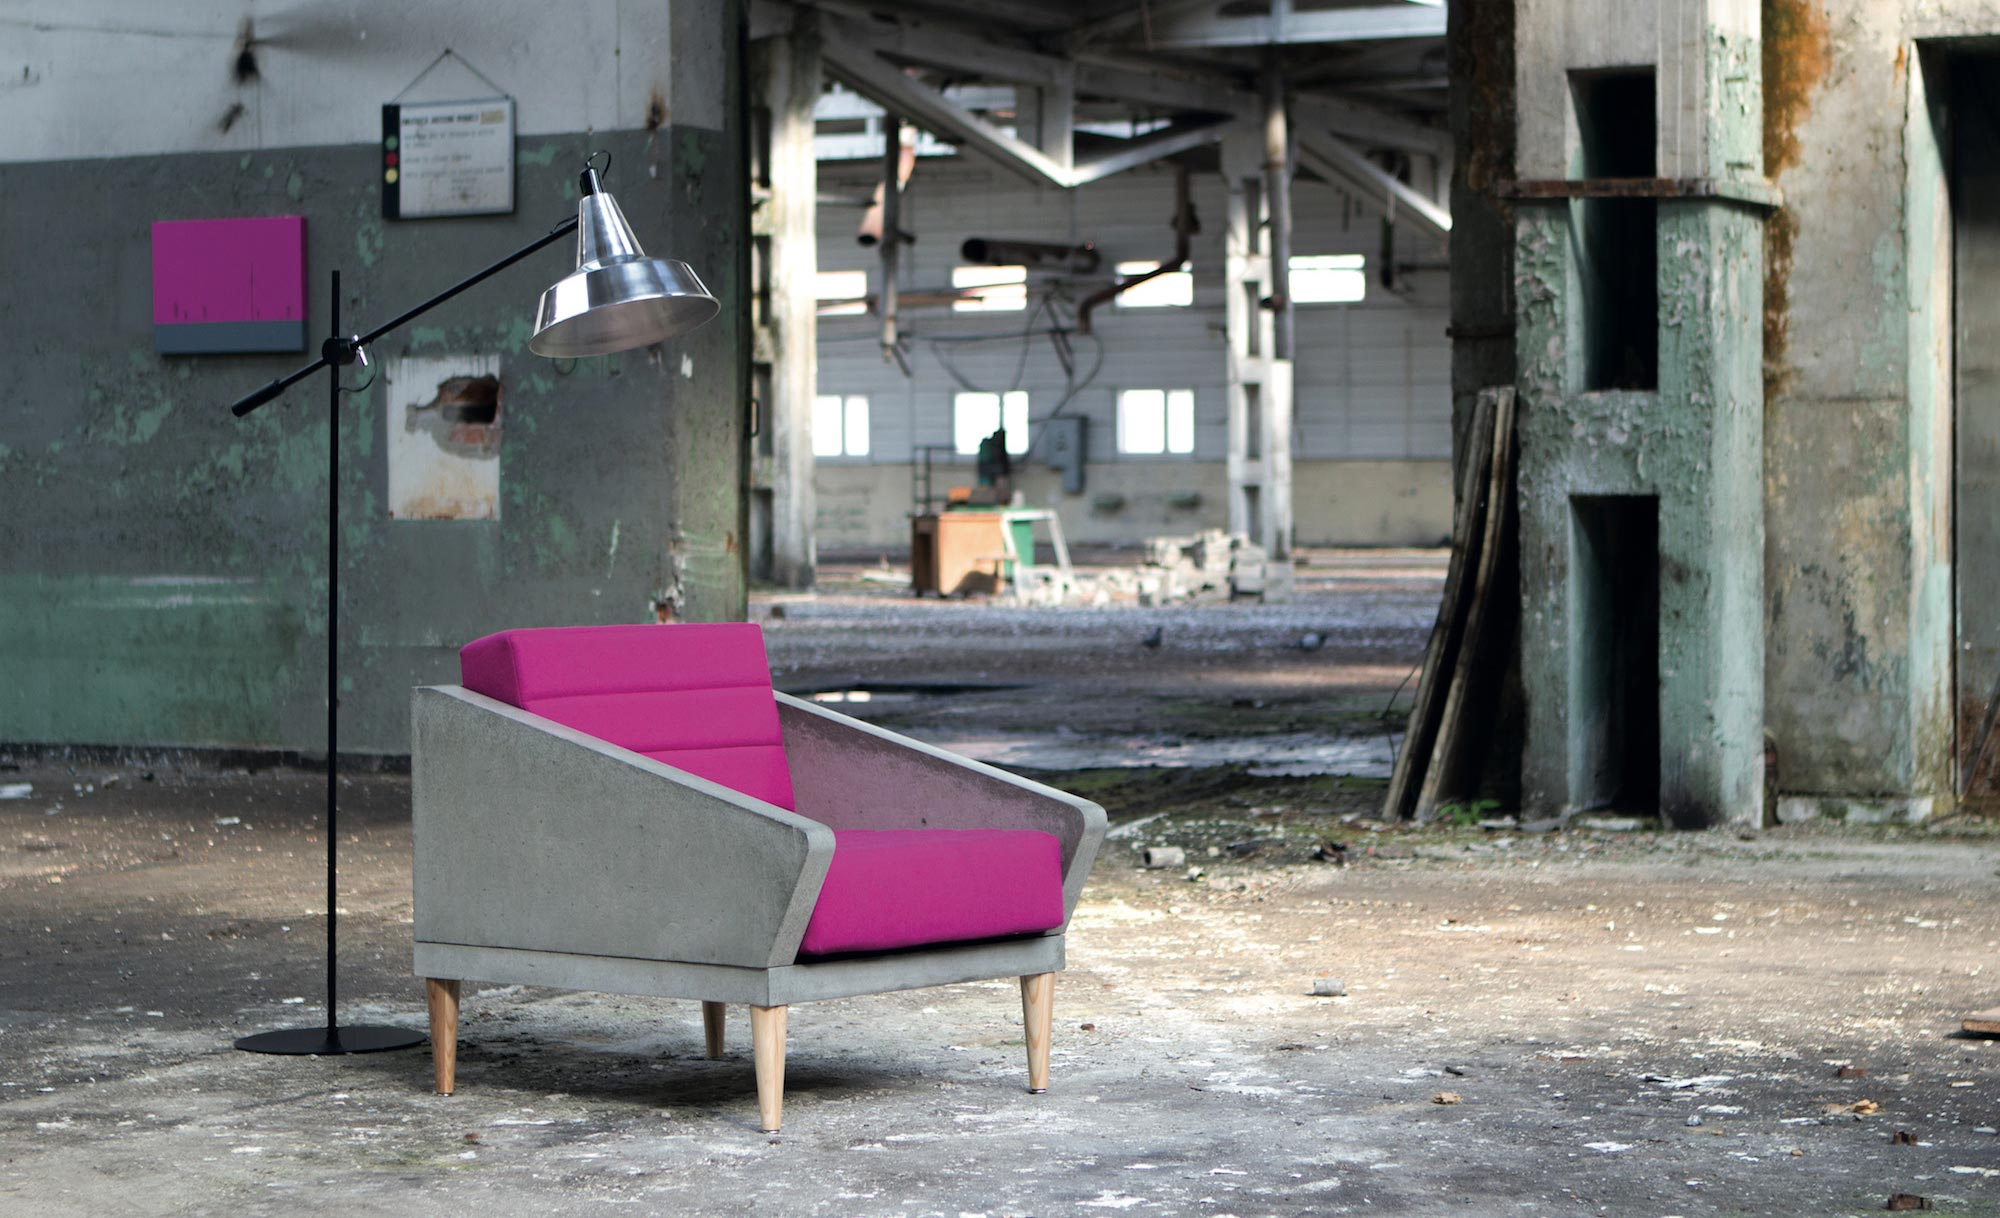 Concrete Elegance: Concrete Furniture